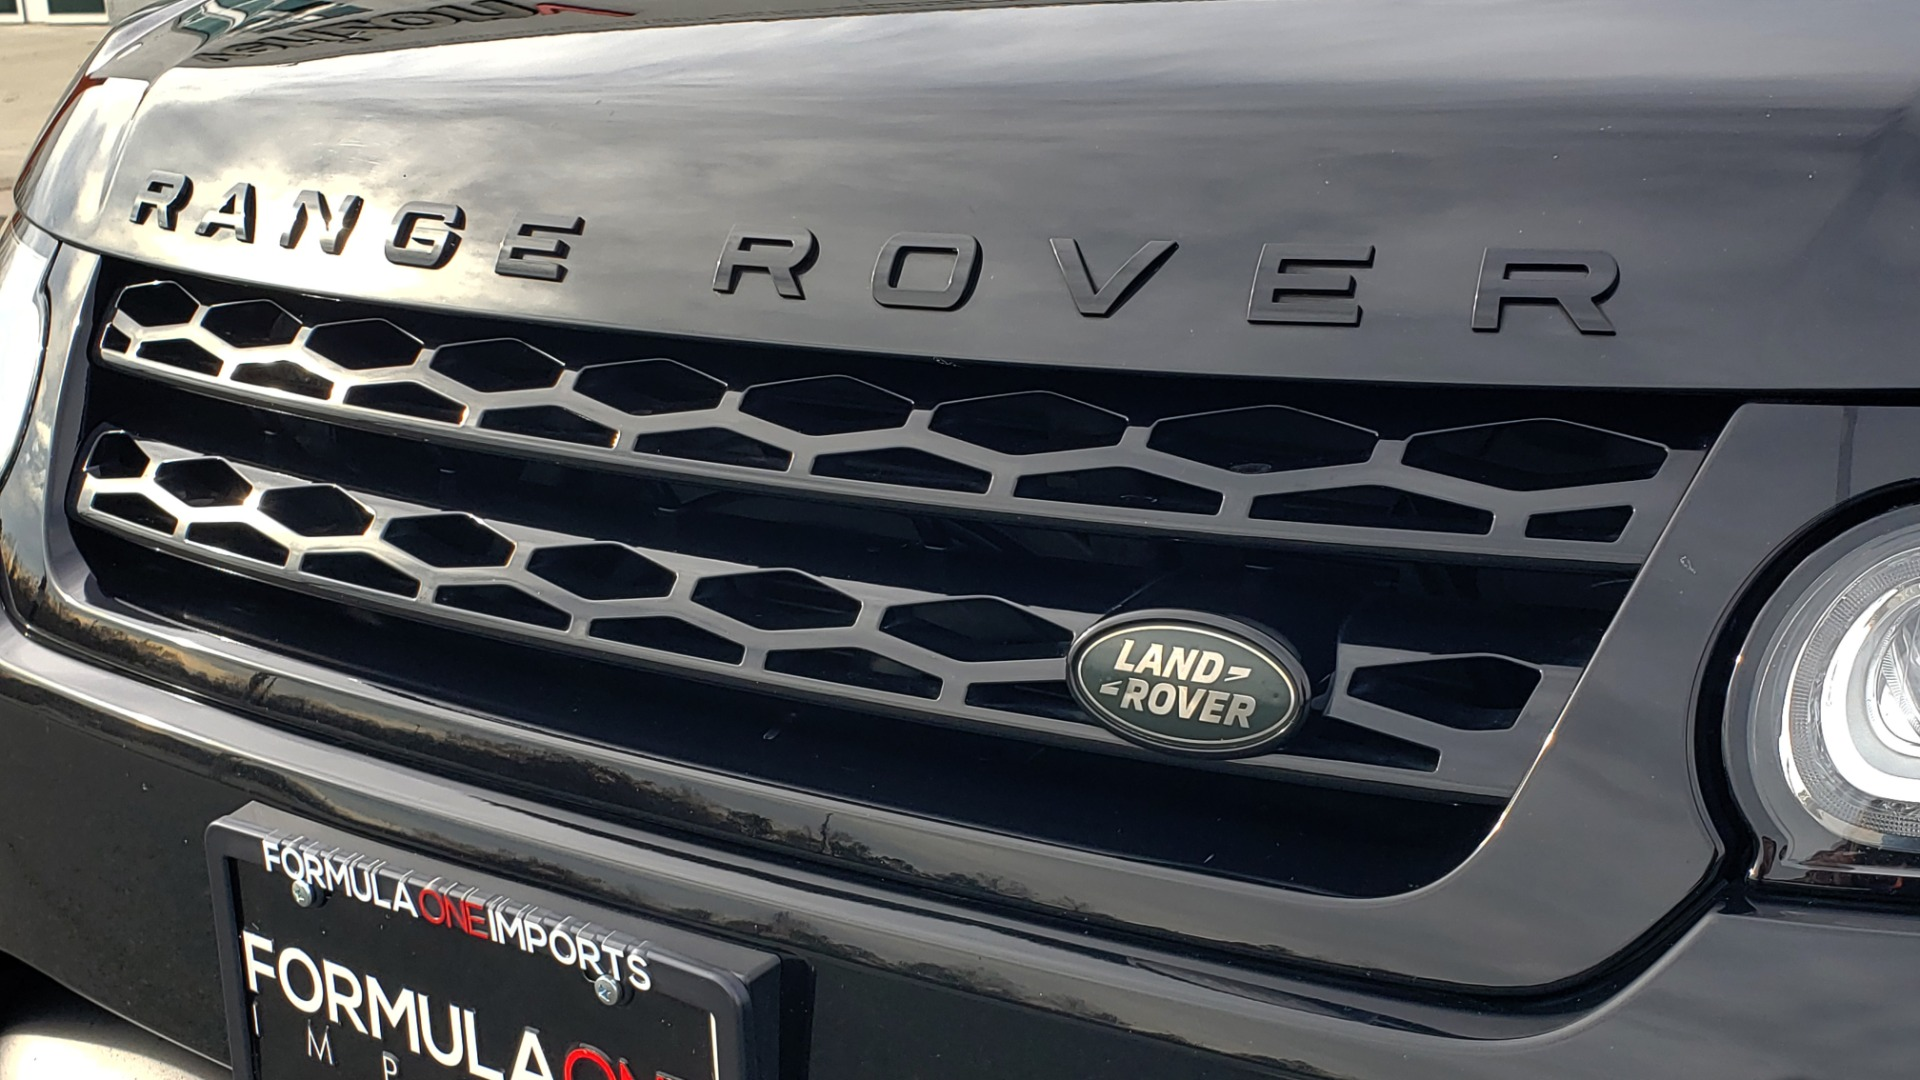 Used 2017 Land Rover RANGE ROVER SPORT HSE DYNAMIC / SC V6 / NAV / MERIDIAN / PANO-ROOF / REARVIEW for sale Sold at Formula Imports in Charlotte NC 28227 25